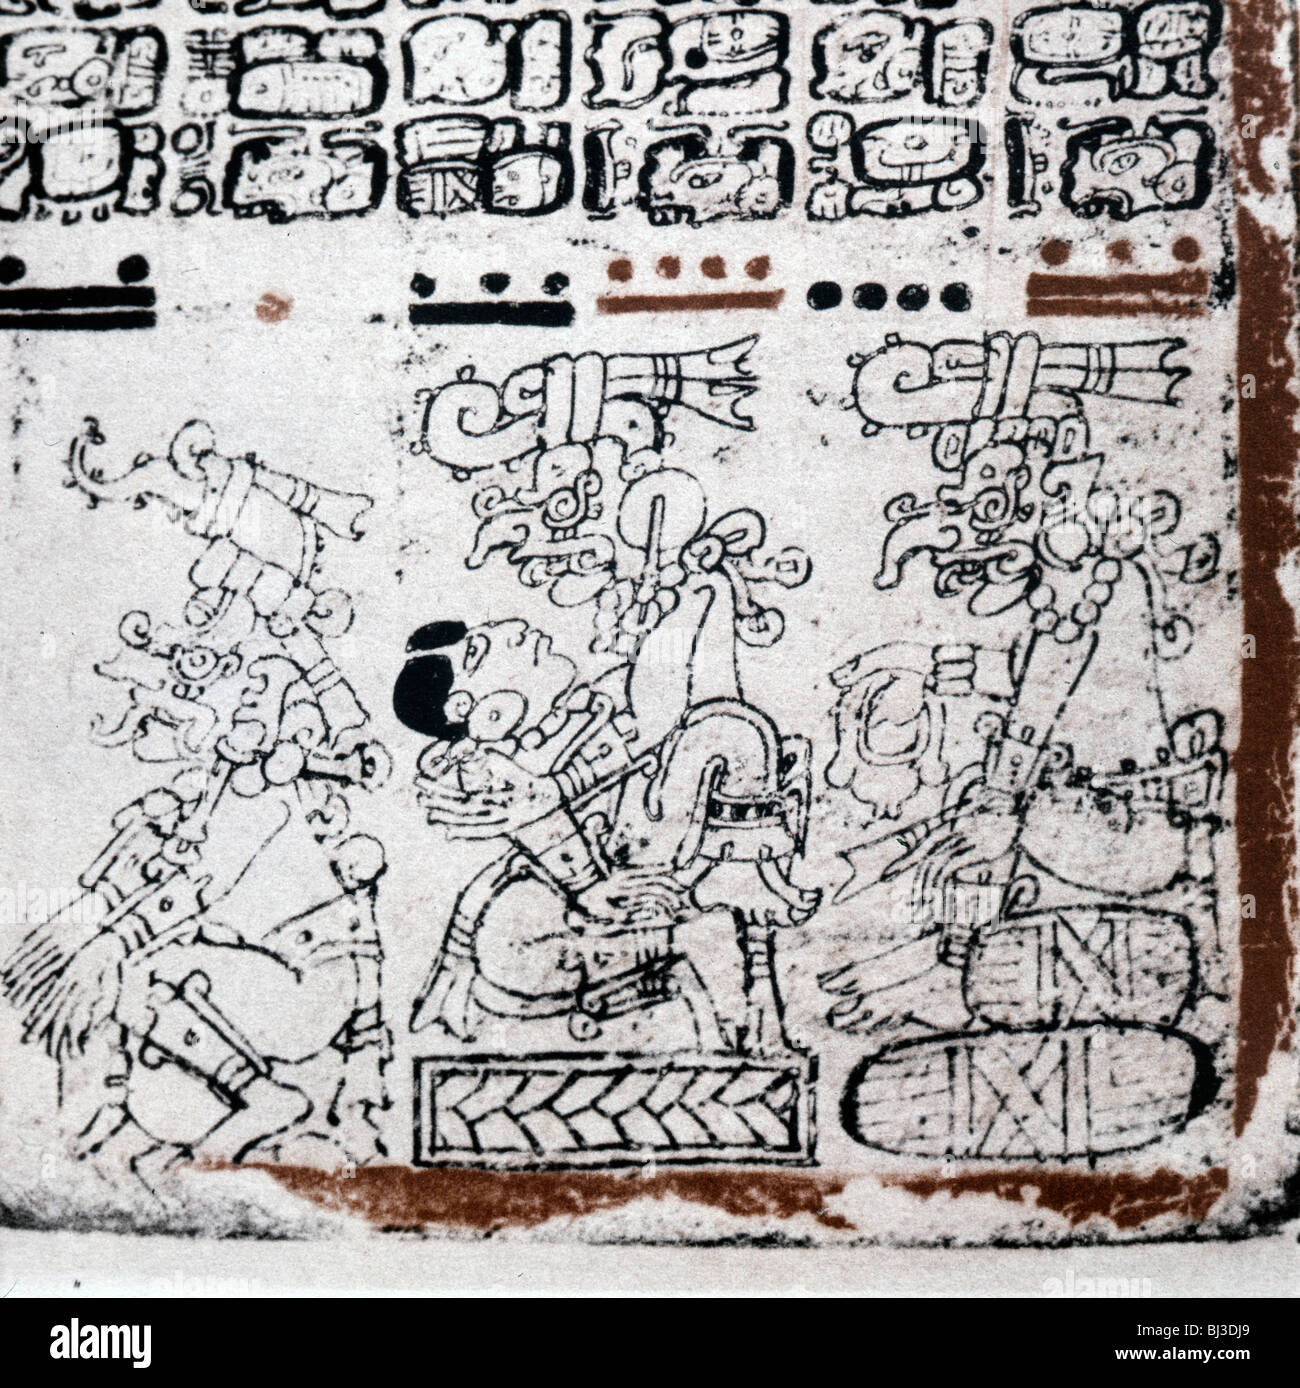 Page from the Madrid Codex, Mayan, Mexico, c1100-1360. Artist: Werner Forman - Stock Image